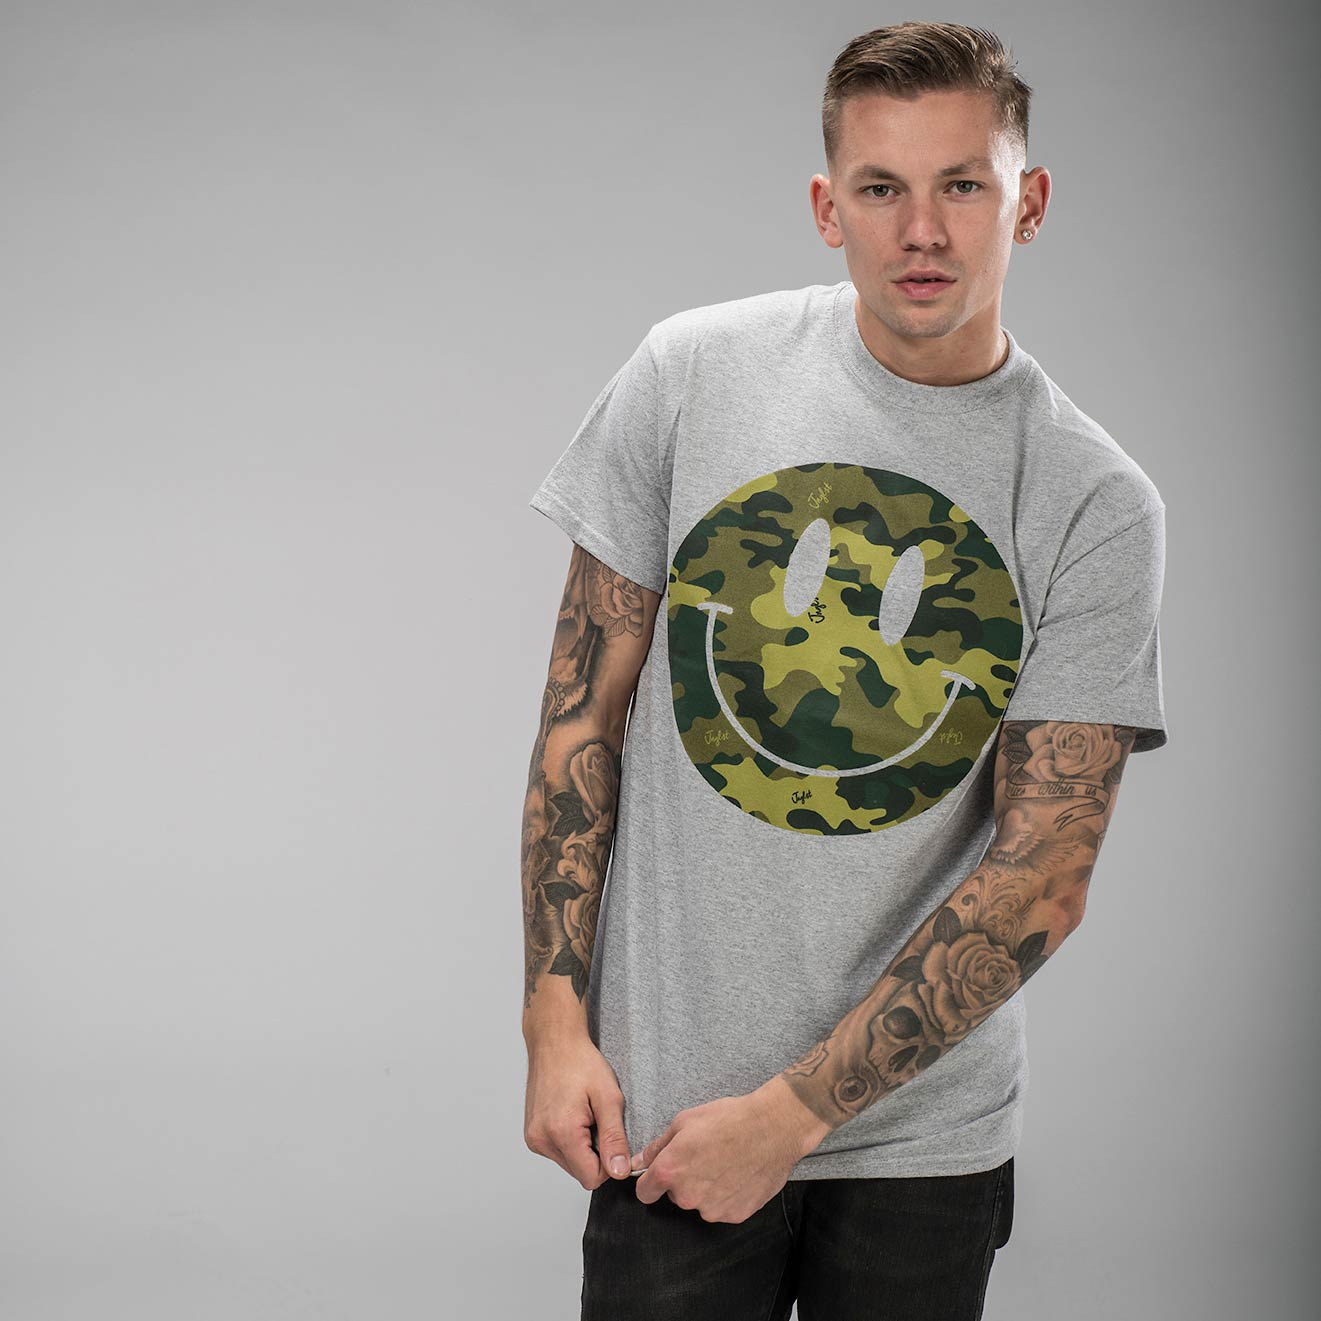 Grey T-Shirt with Camo Smiley Raver Clothing